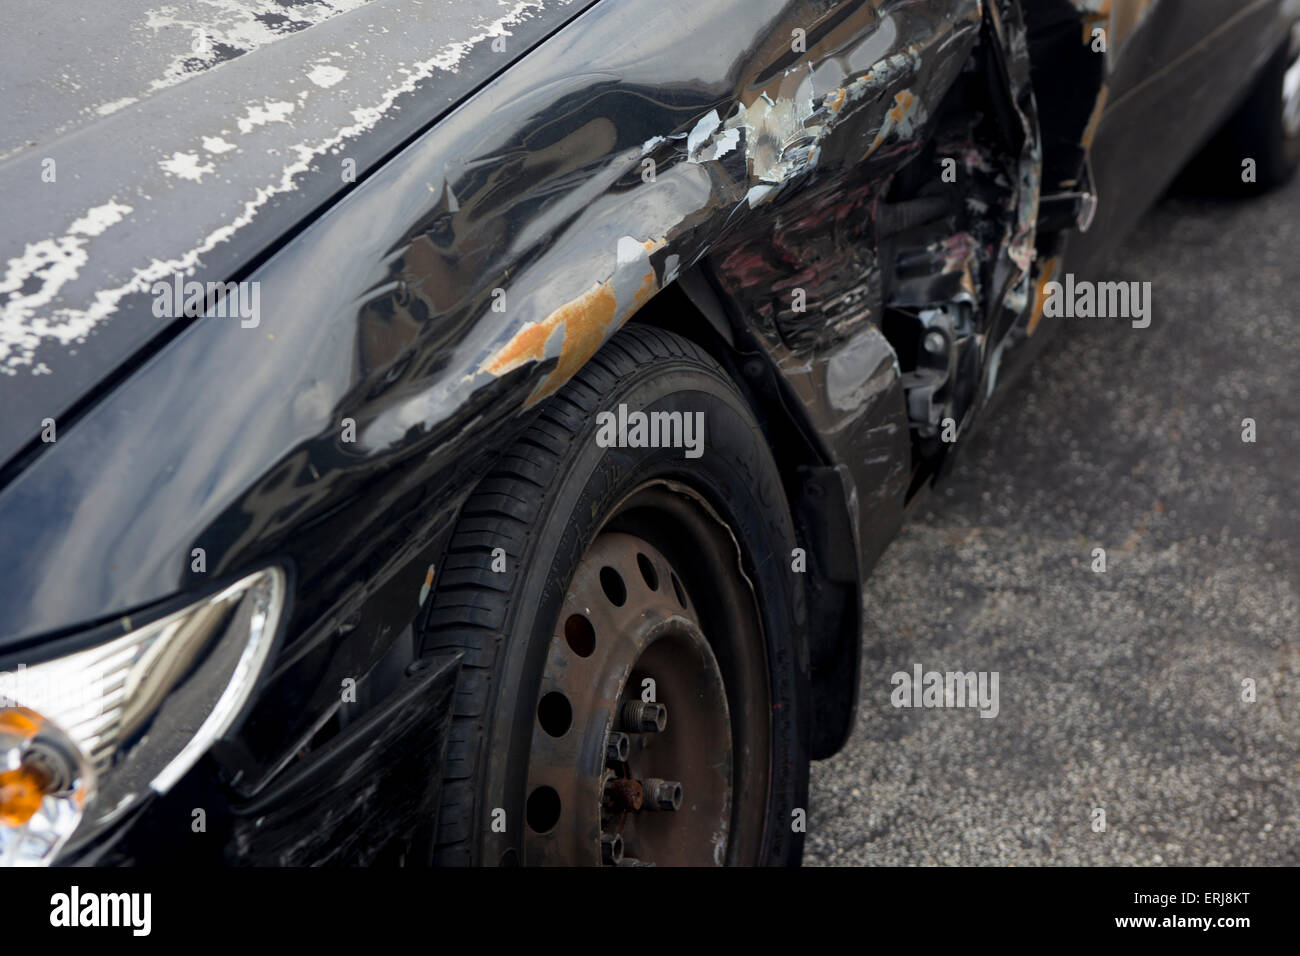 Side Swiped Car at the Wheel Well Accident - Stock Image